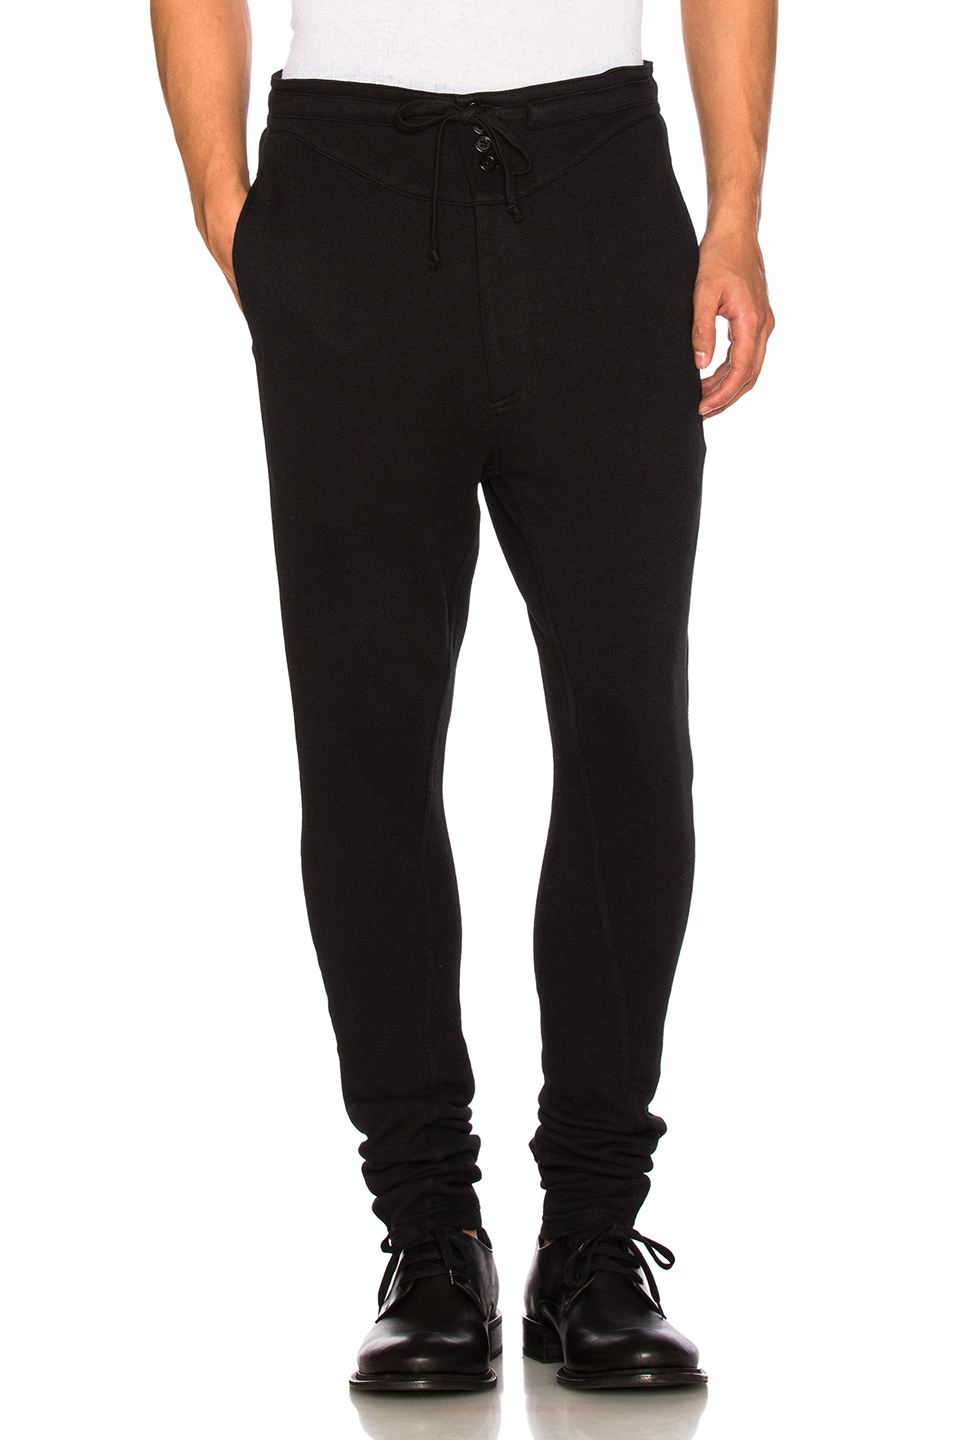 Ann Demeulemeester Sweatpants in Black